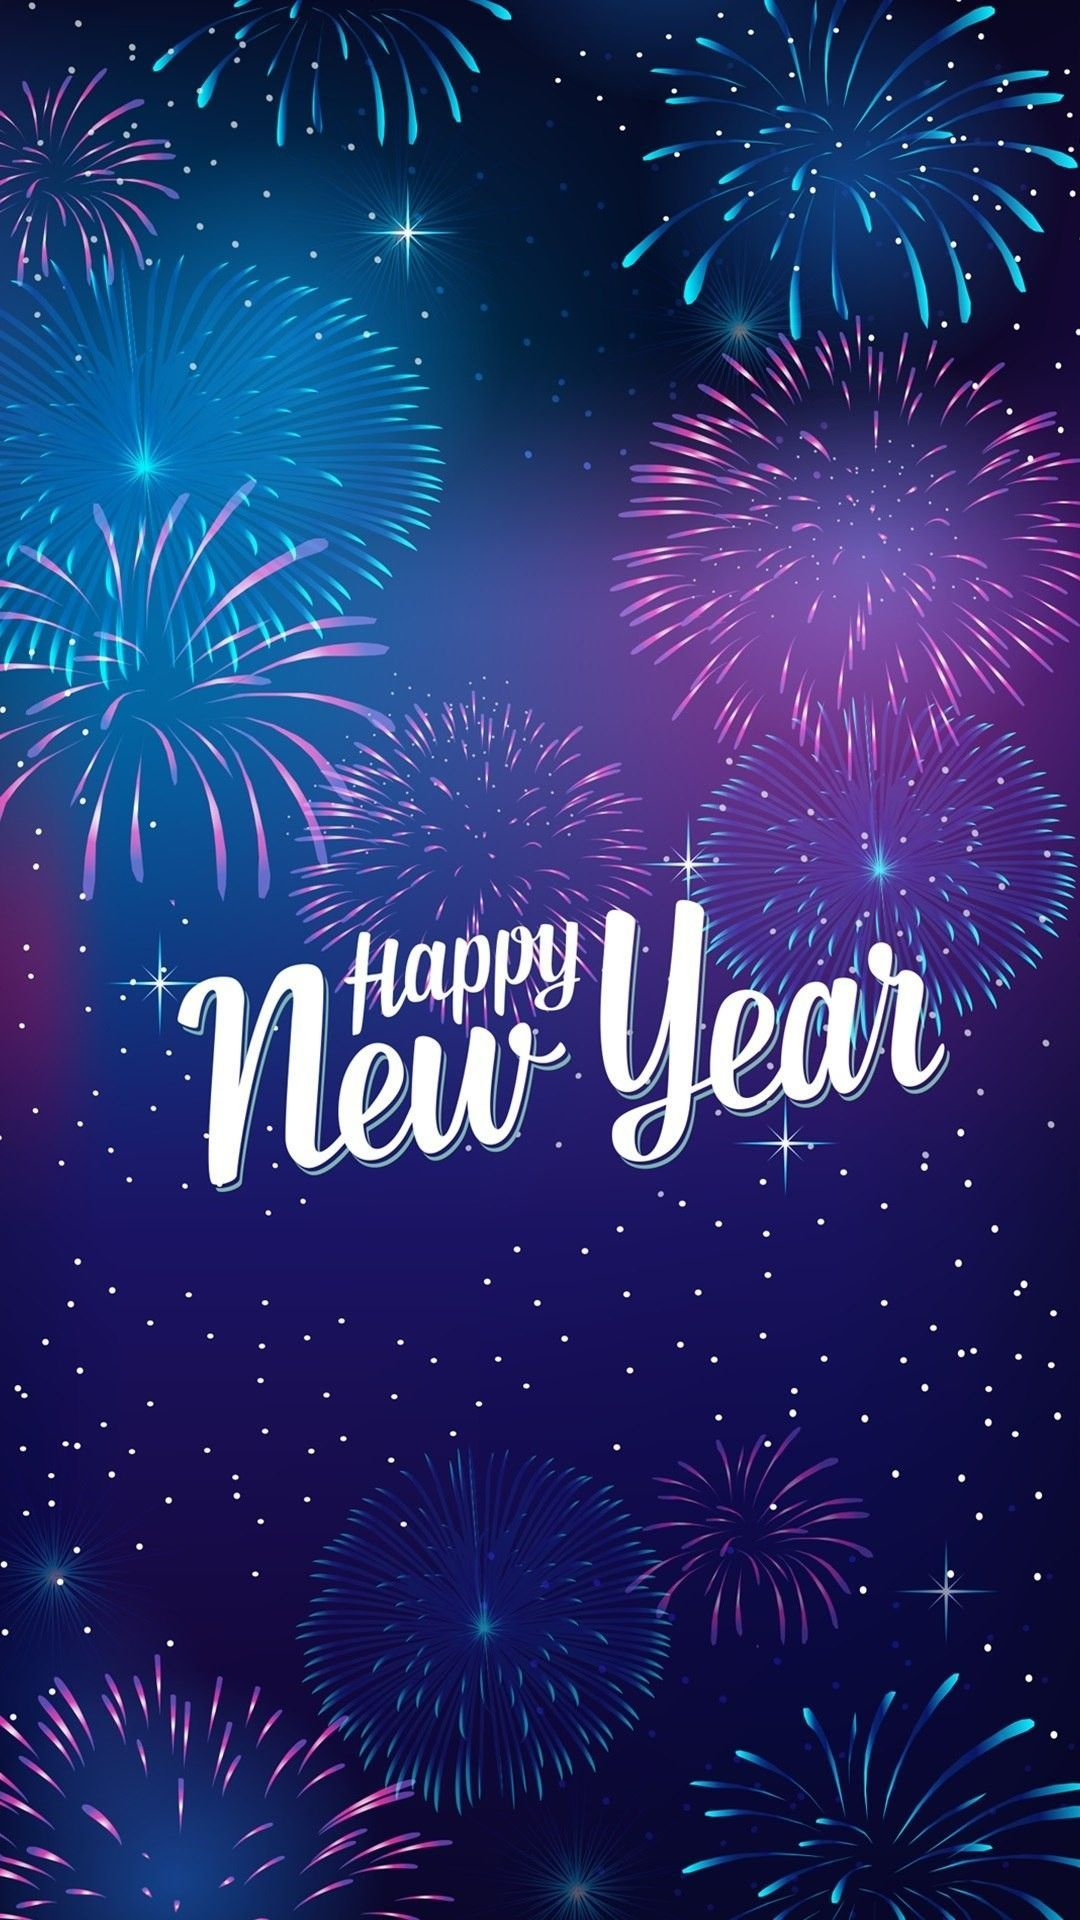 New Year Phone Wallpapers Top Free New Year Phone